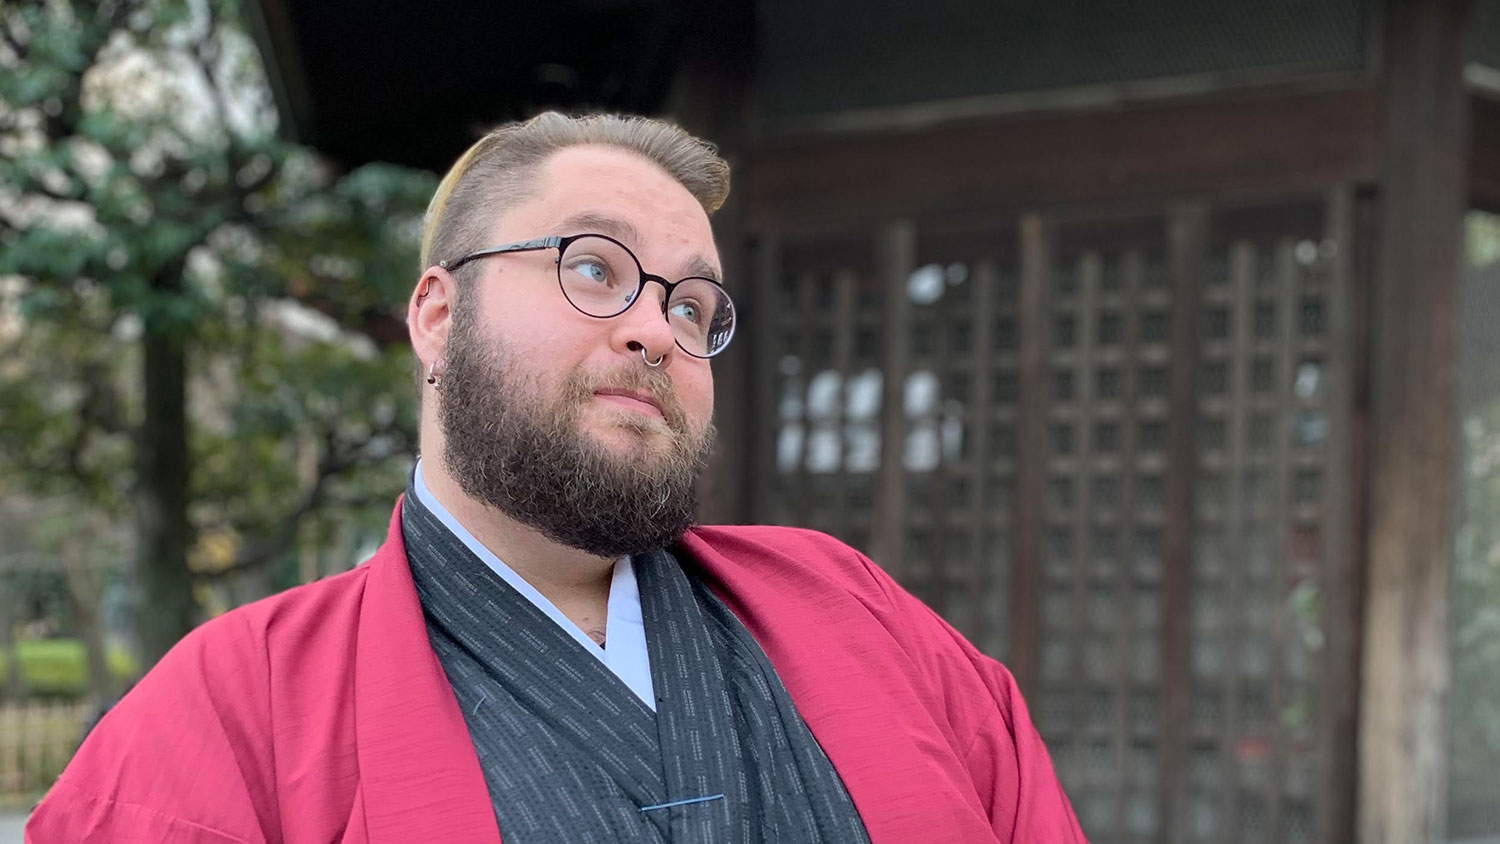 White male in red and black jacket